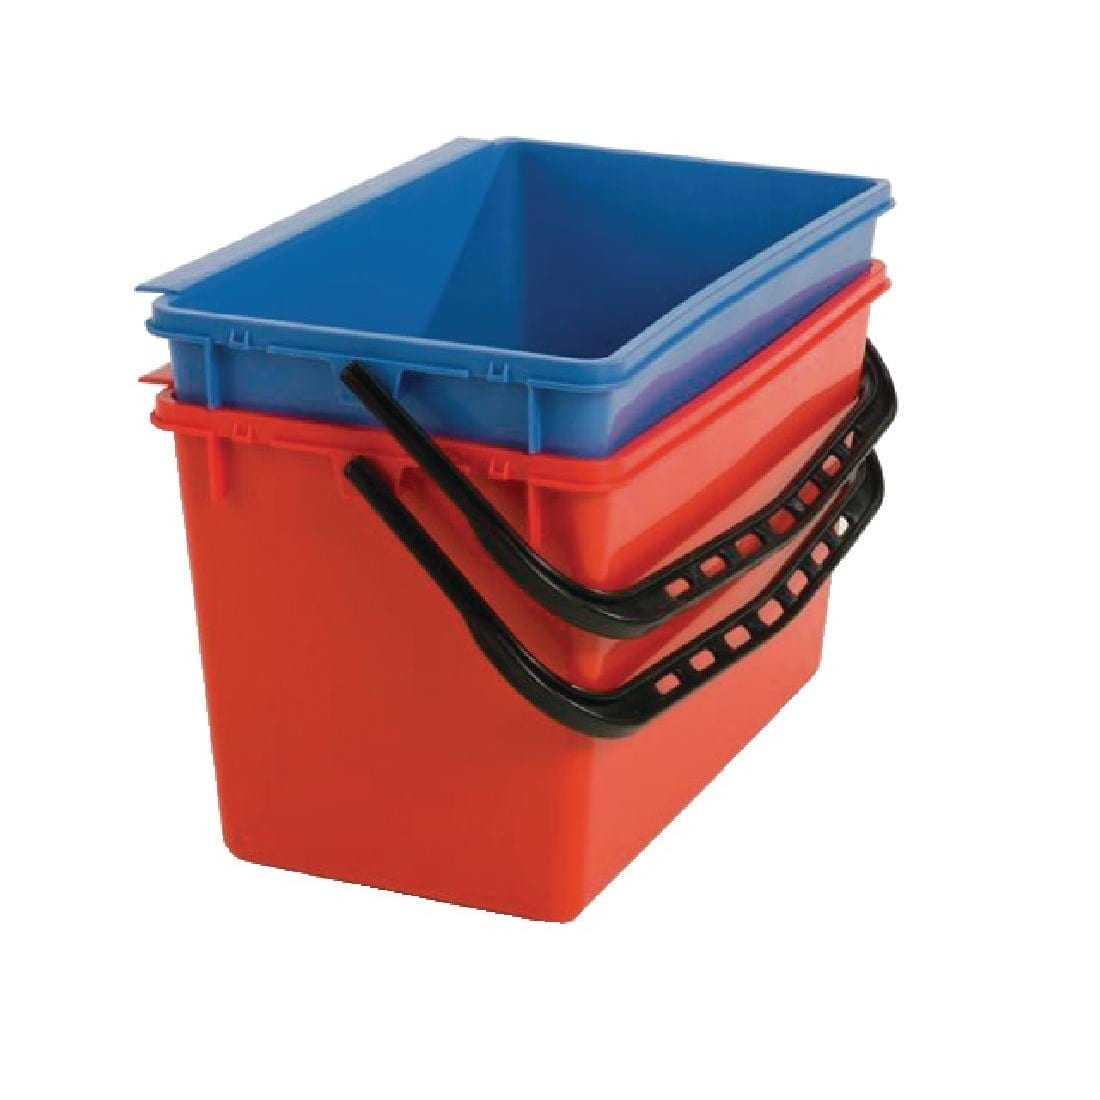 Numatic Mop Buckets x 2 (Red & Blue) - 22Ltr for Janitorial Cart F658 (Direct)-0